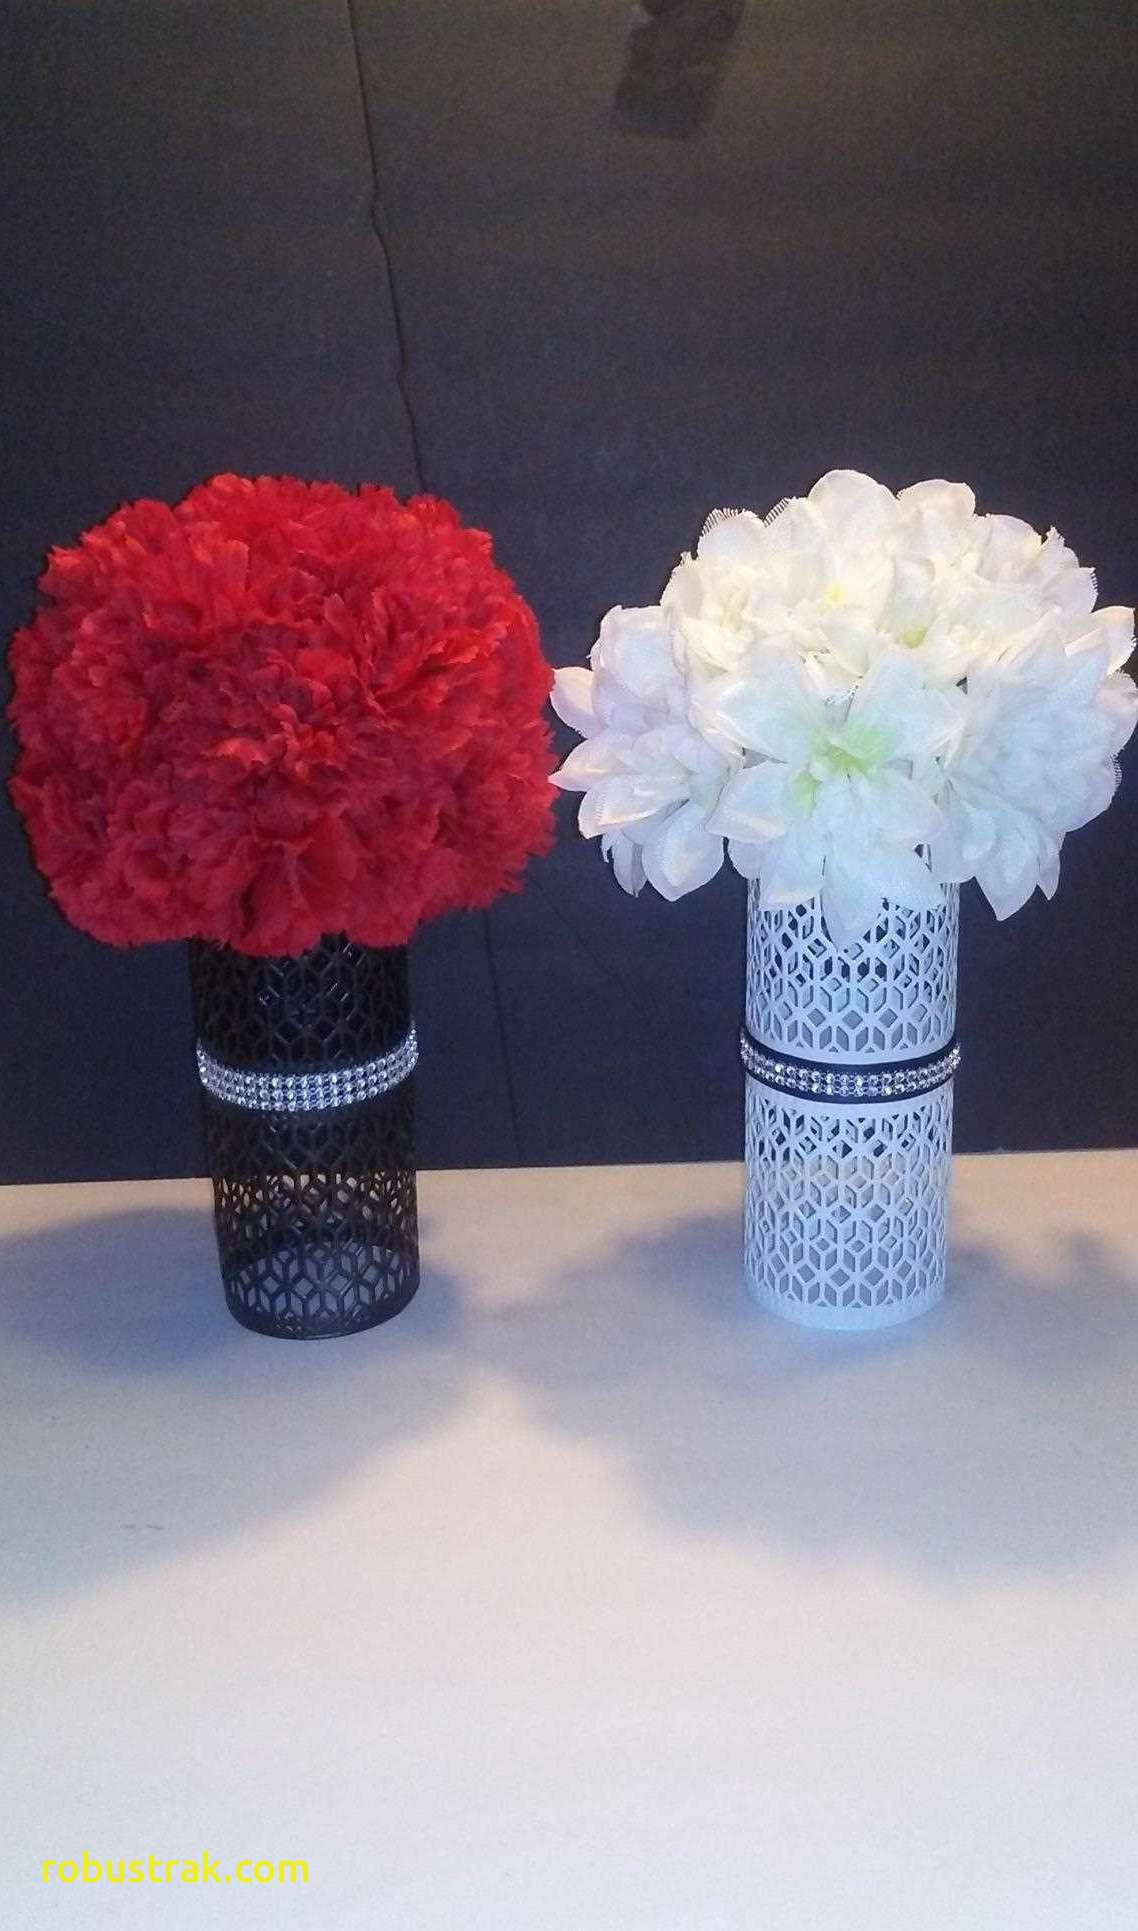 6 cylinder vase of beautiful wedding vase decorations home design ideas pertaining to dollar tree wedding decorations awesome h vases dollar vase i 0d design wedding silk flower